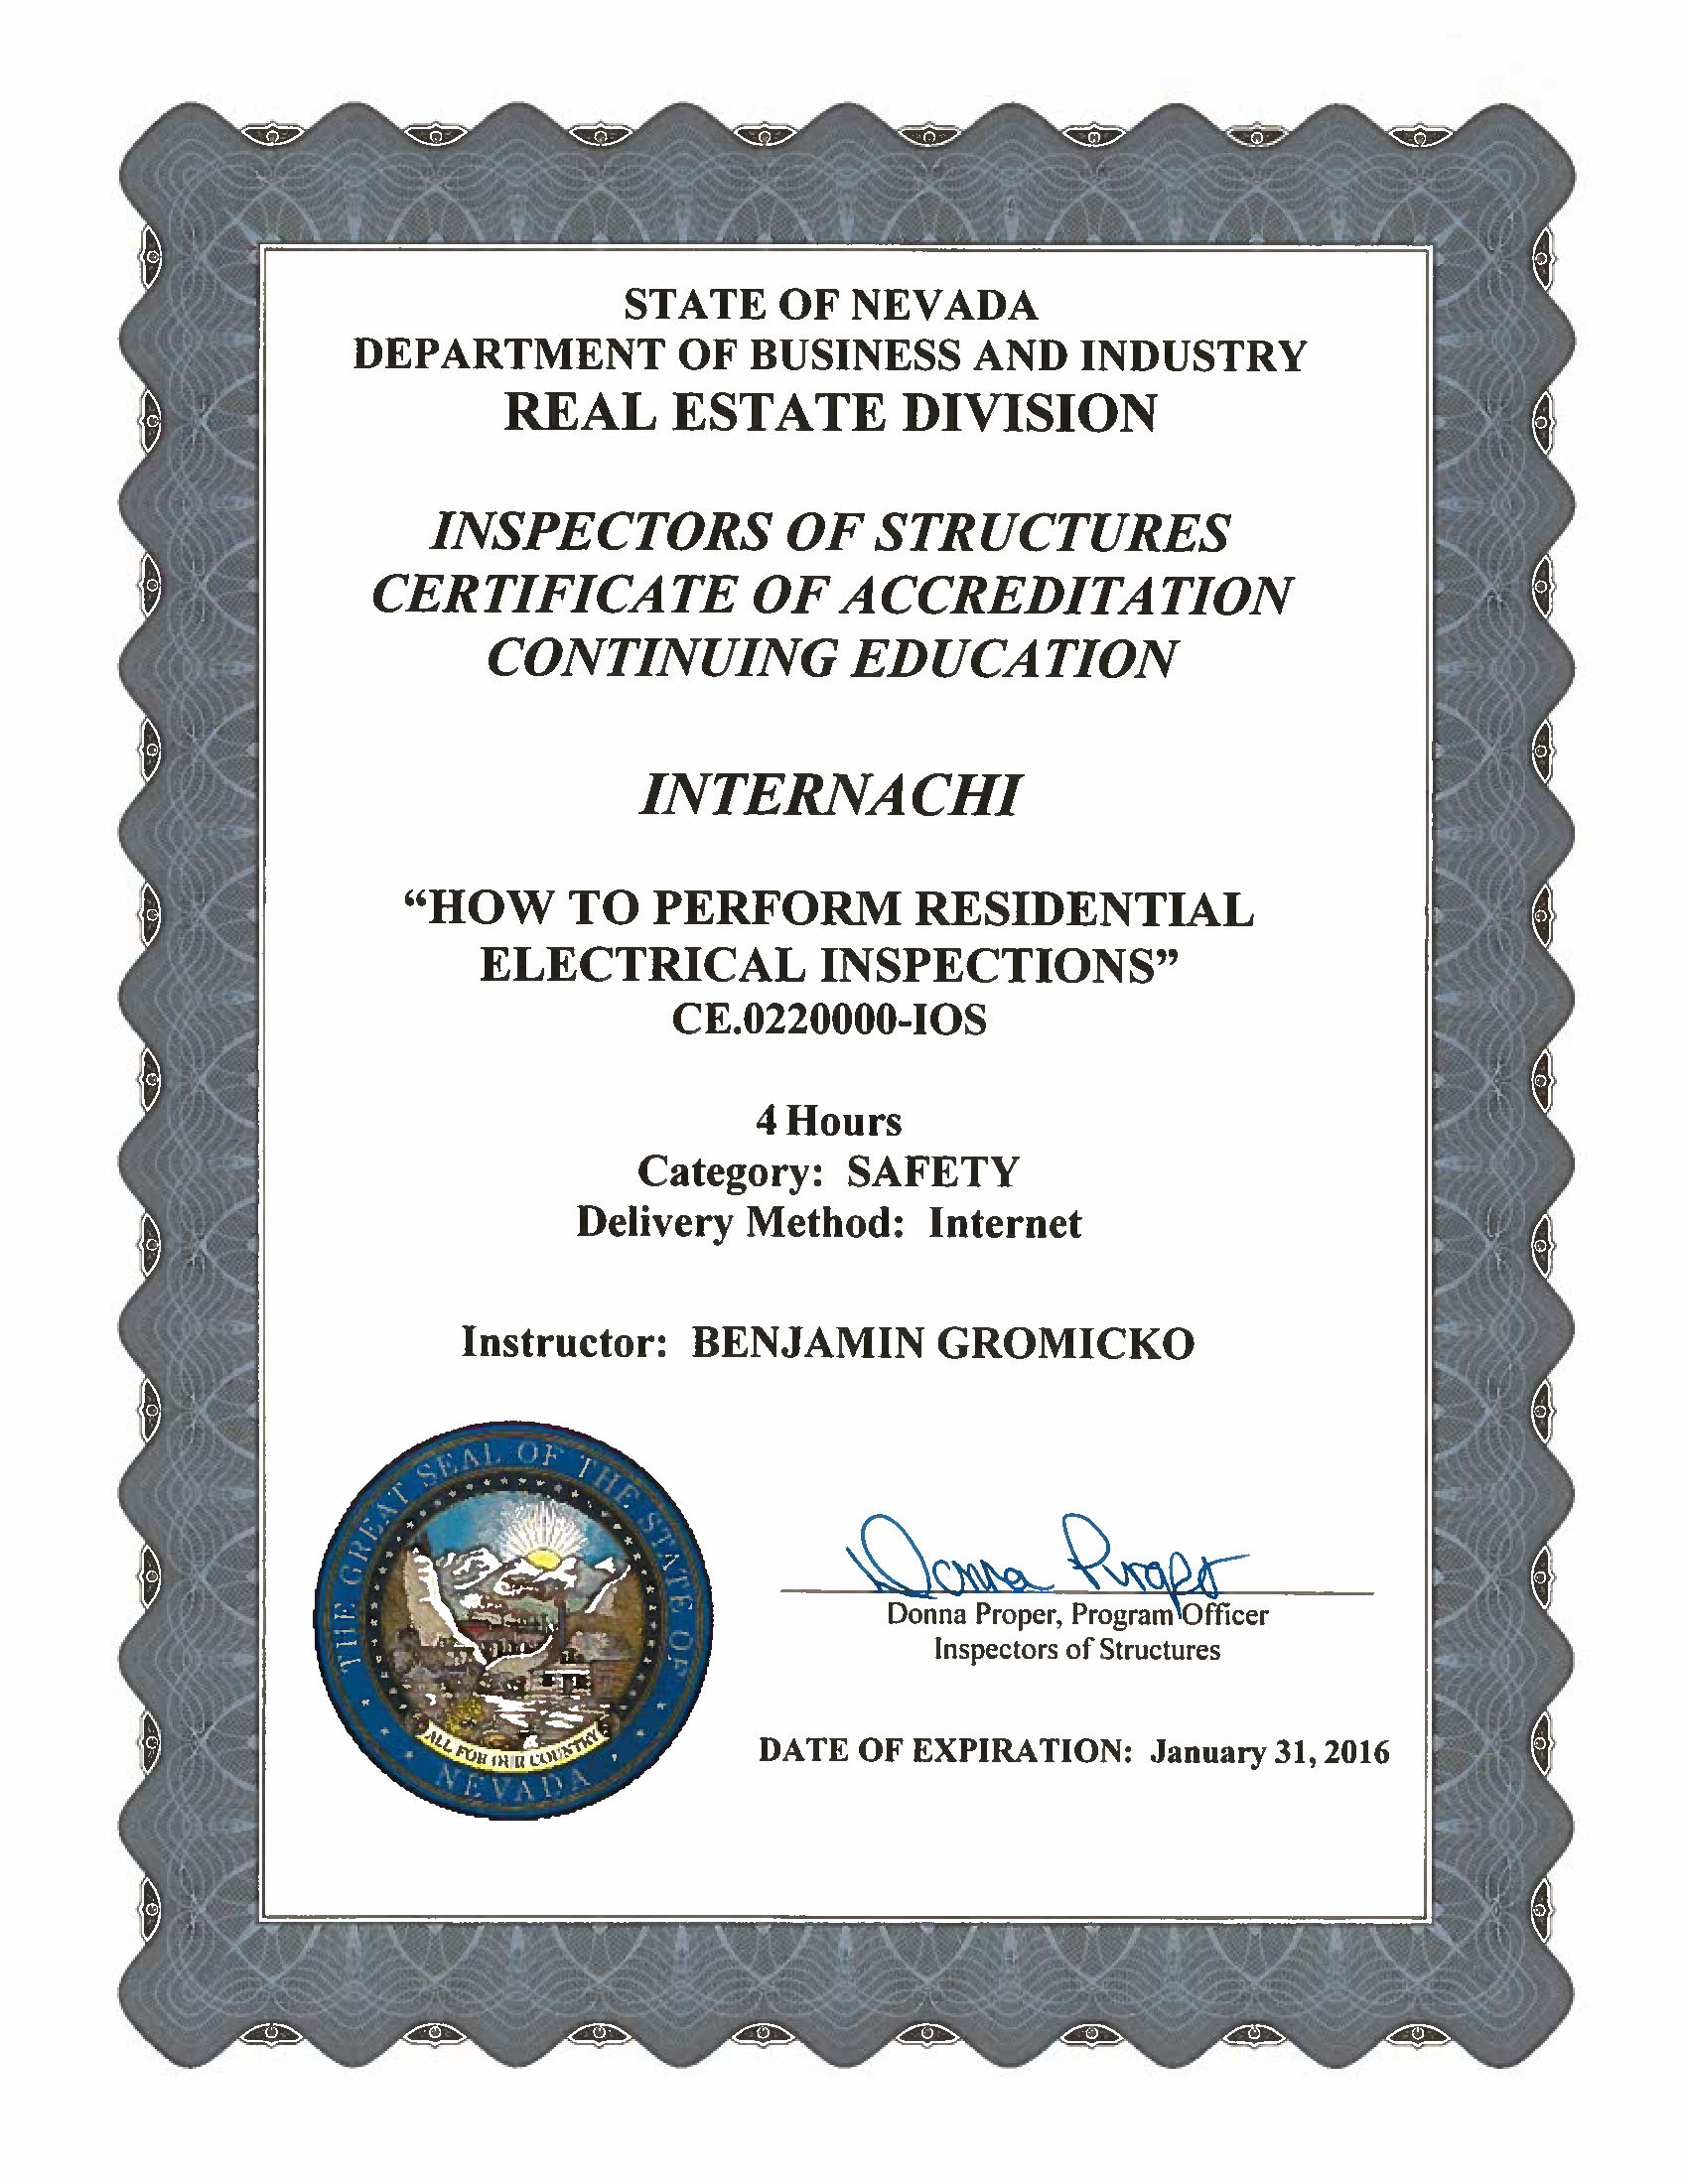 How to become a certified home inspector in nevada internachi view approval of residential electrical inspections xflitez Images